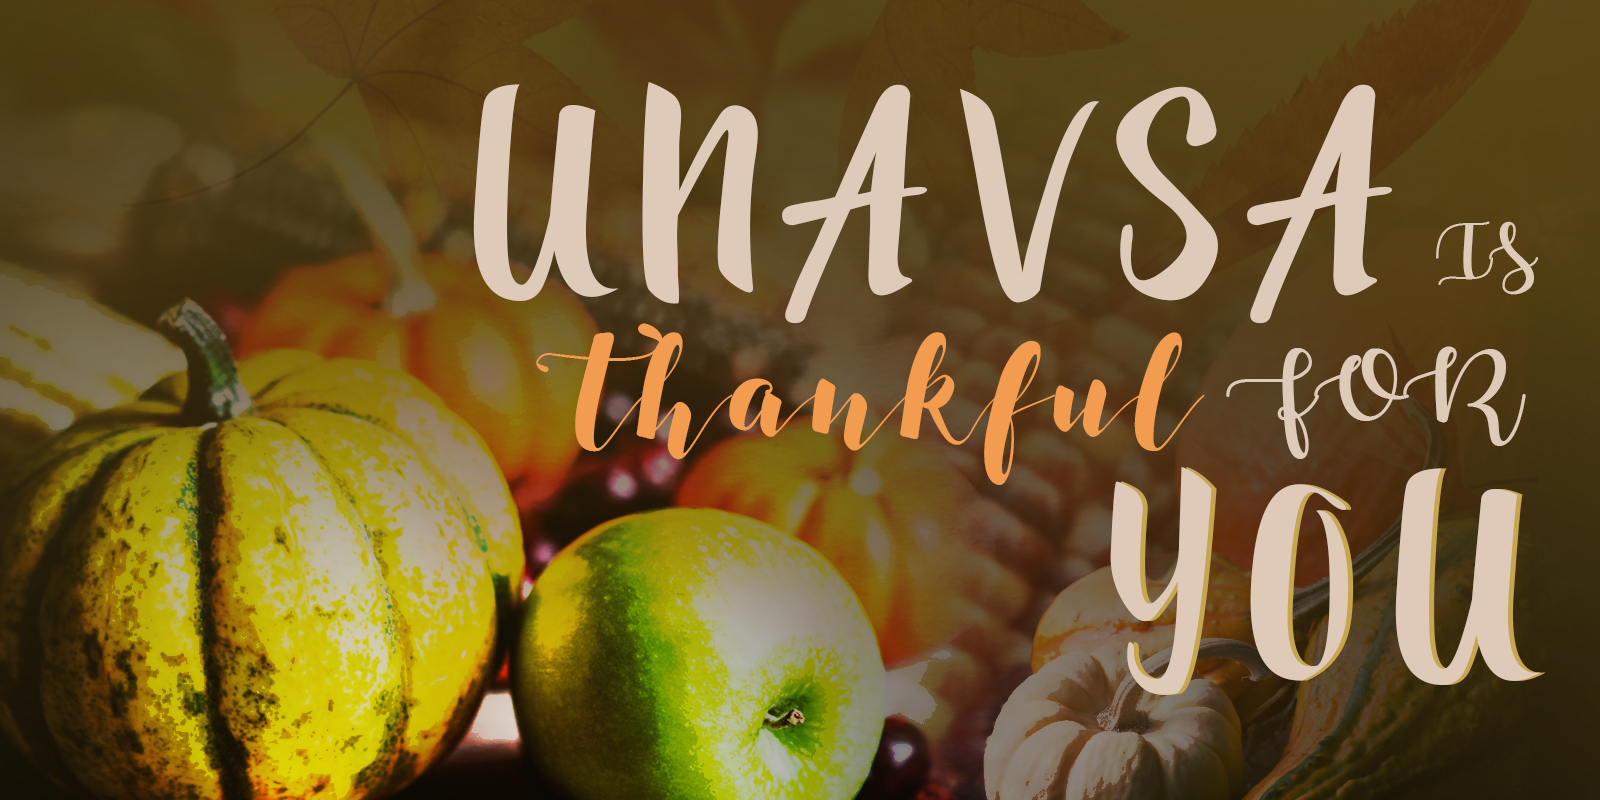 unavsa_thanksgiving-gfx-newsletter_update_01